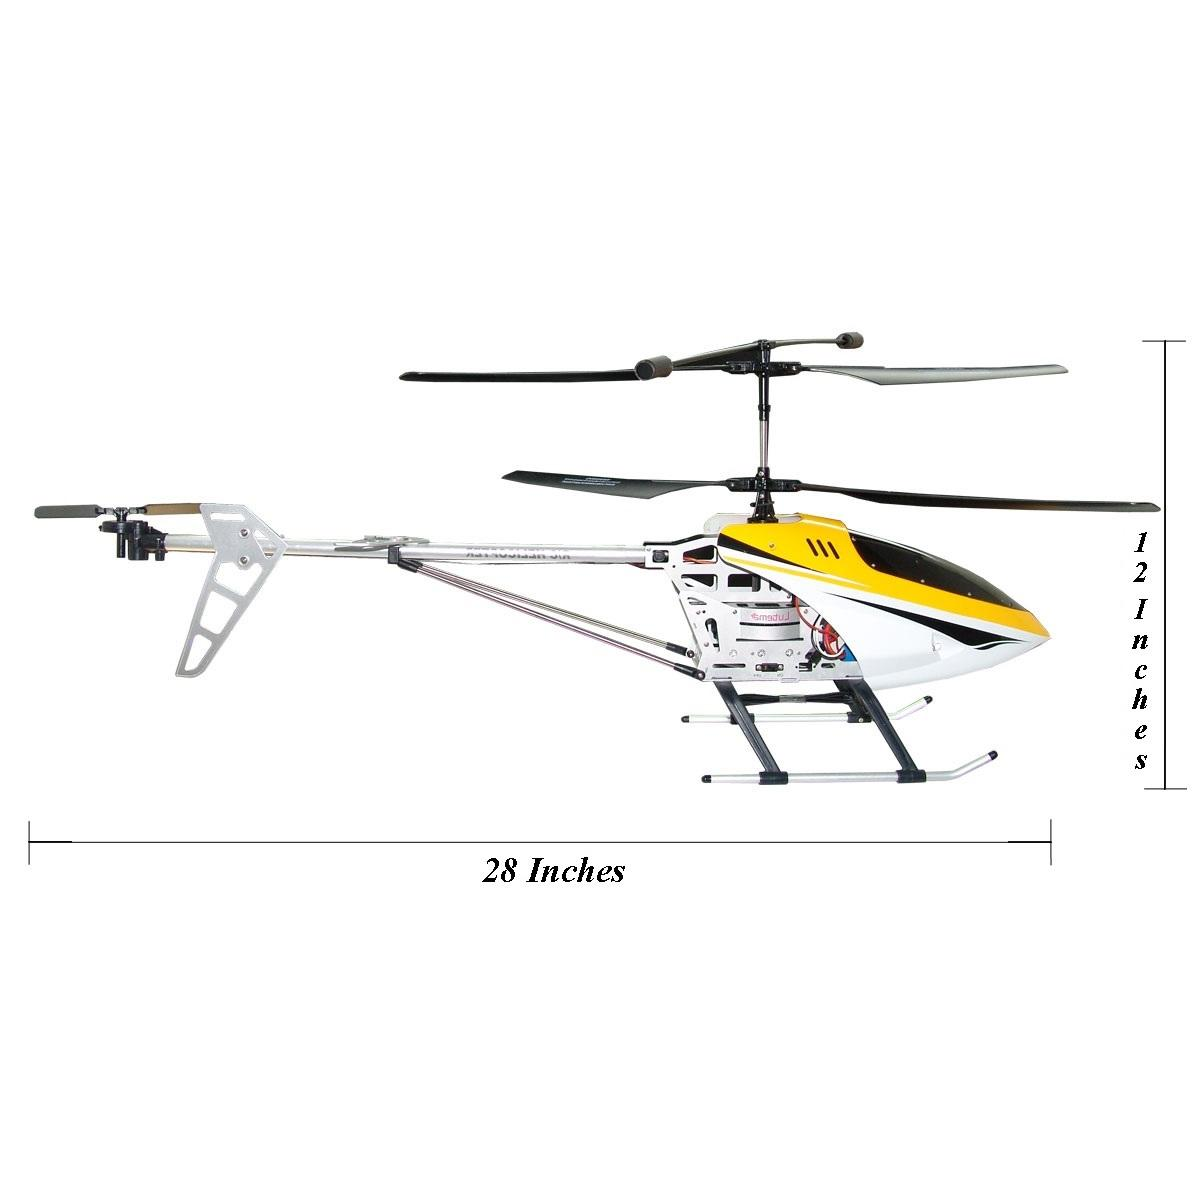 amazon com  lutema 3 5ch remote control helicopter  yellow  large  toys  u0026 games